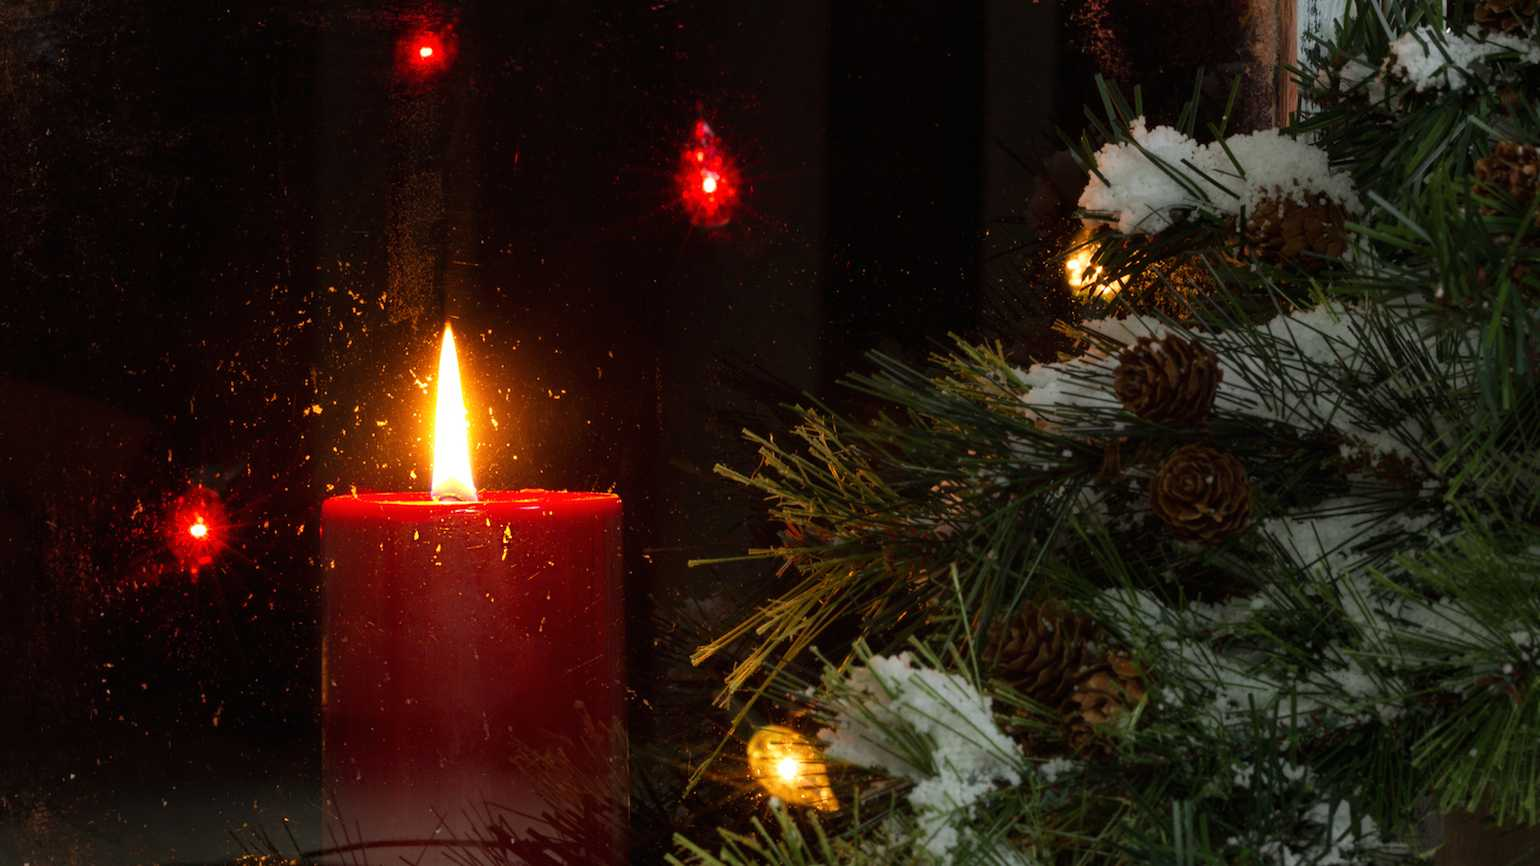 A prayer for those suffering at Christmas